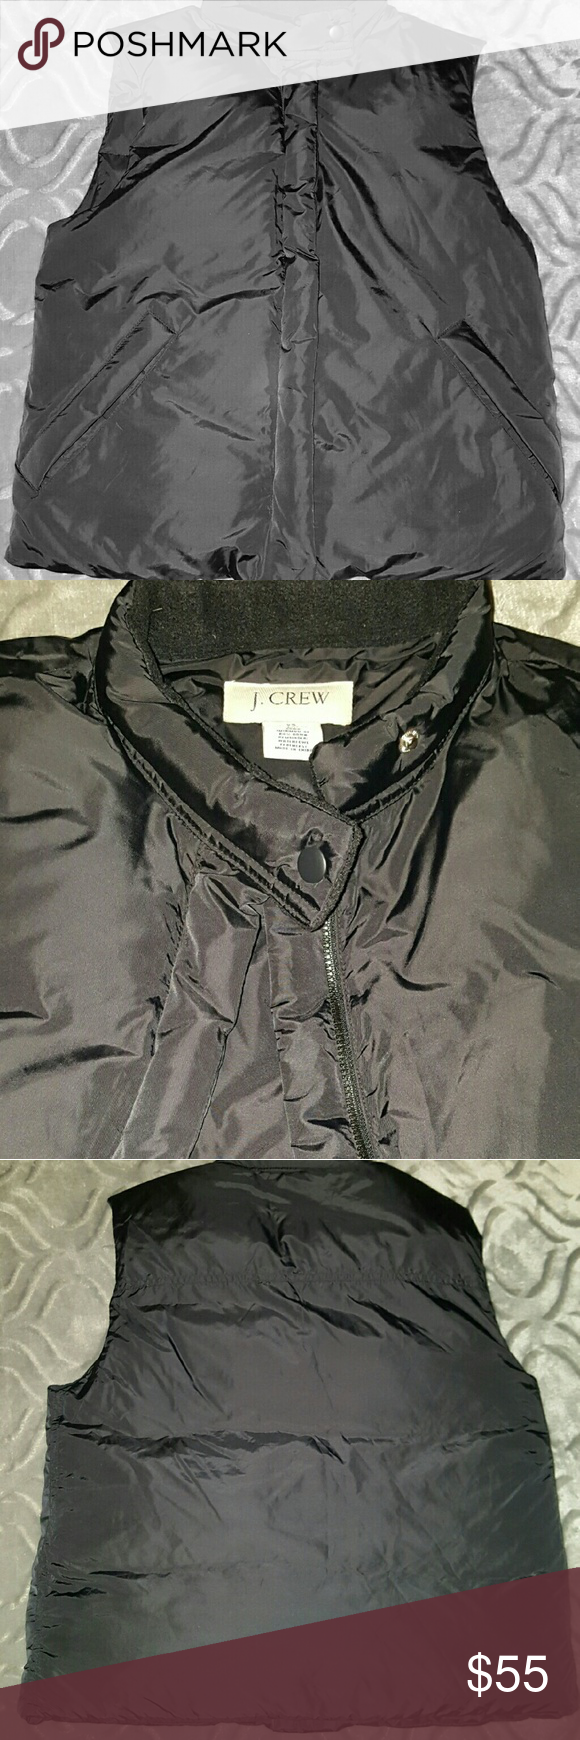 J. Crew Down Classic Puffer Vest Black In excellent condition with 2 front zip pockets to secure your belongings. Very warm and such a classic look. Minimum 80% down, remainder waterfowl feathers. From a smoke free environment. Full zip with top and bottom snap. J. Crew Jackets & Coats